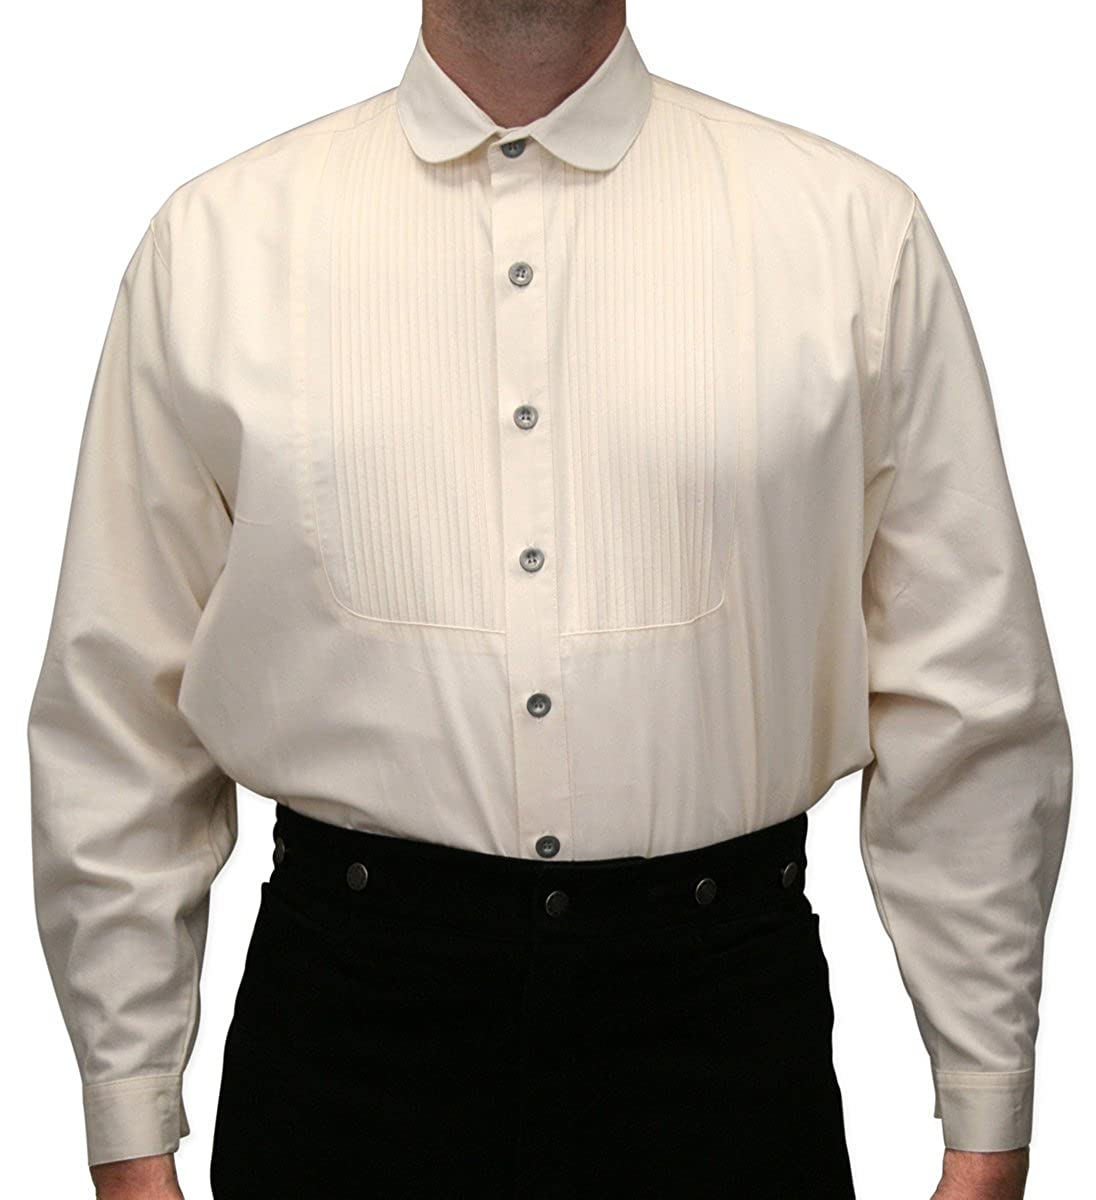 Steampunk Mens Shirts Historical Emporium Mens Pleated Edwardian Round Club Collar Dress Shirt $59.95 AT vintagedancer.com